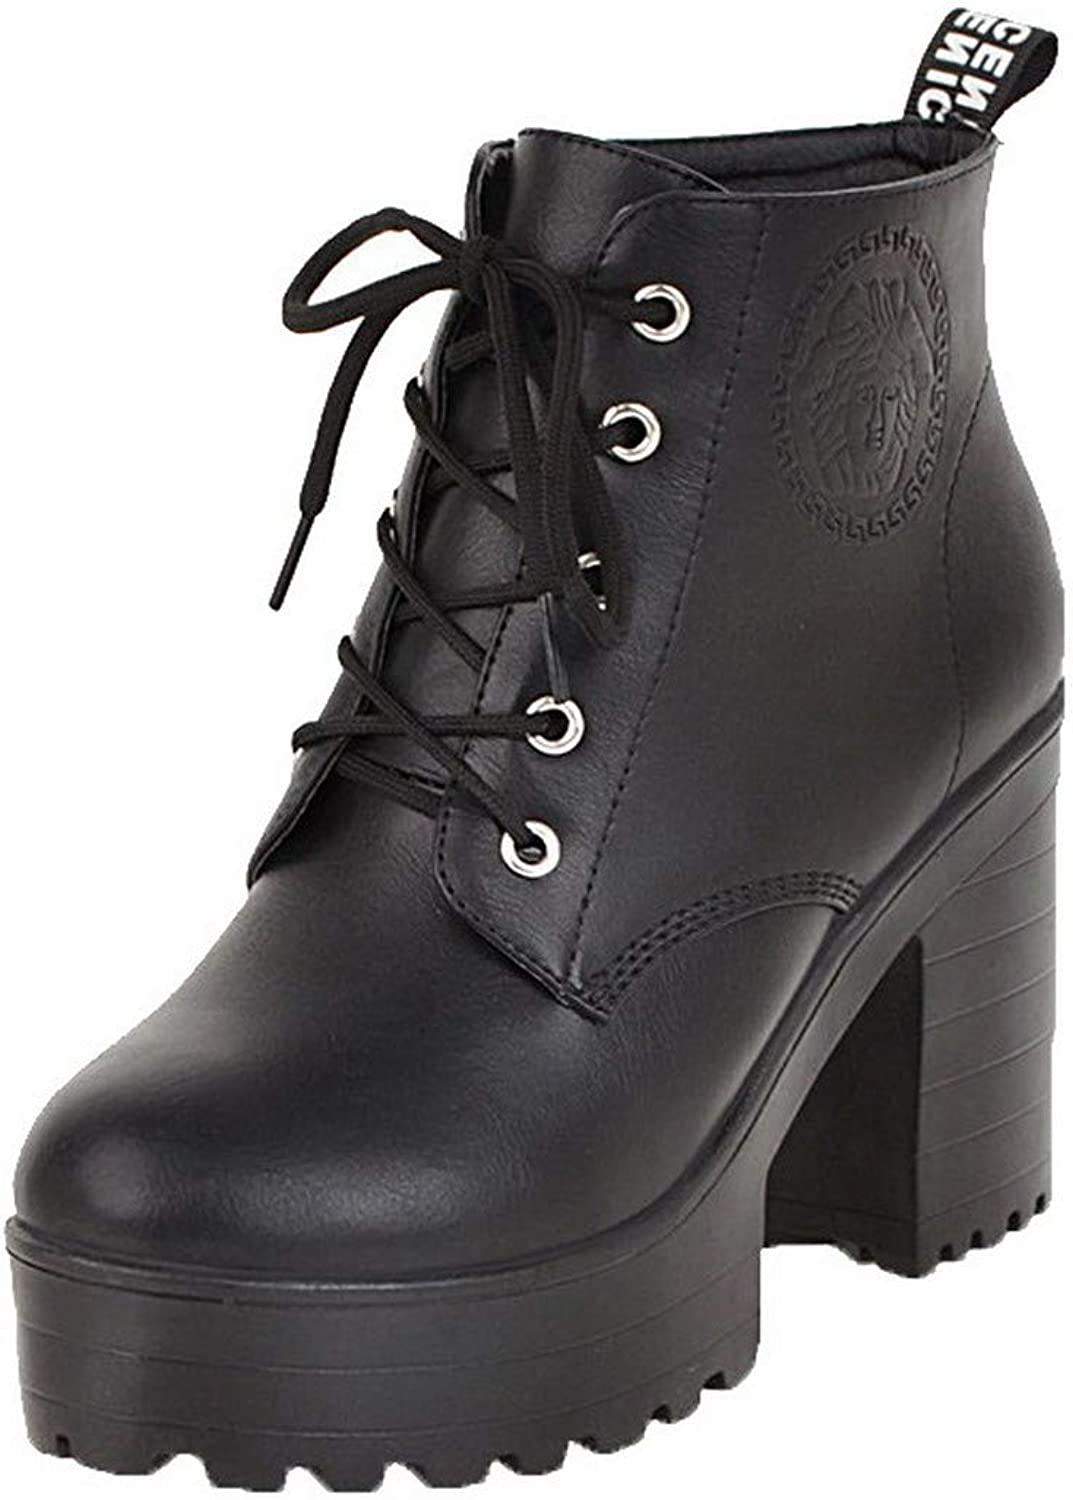 AmoonyFashion Women's Low-Top Lace-Up Pu High-Heels Round-Toe Boots, BUSXT117104